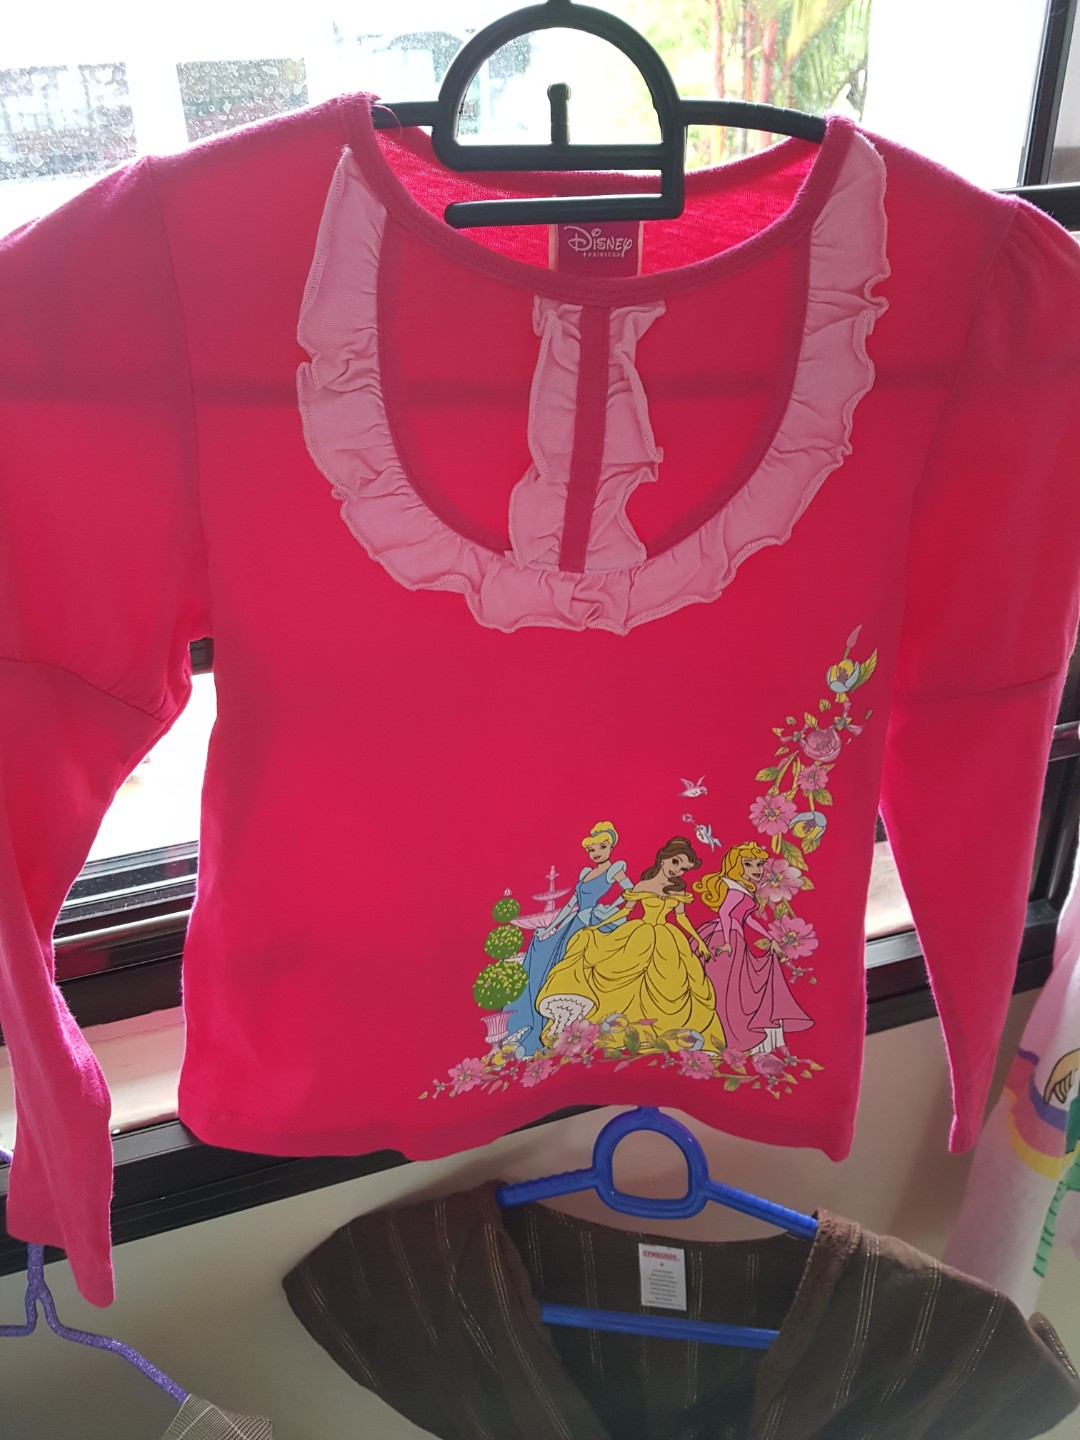 6e3a6a3f1 Disney Princess, Charabia, Gymboree Blouses, Shirts, Tops, Luxury, Apparel,  Kids' on Carousell